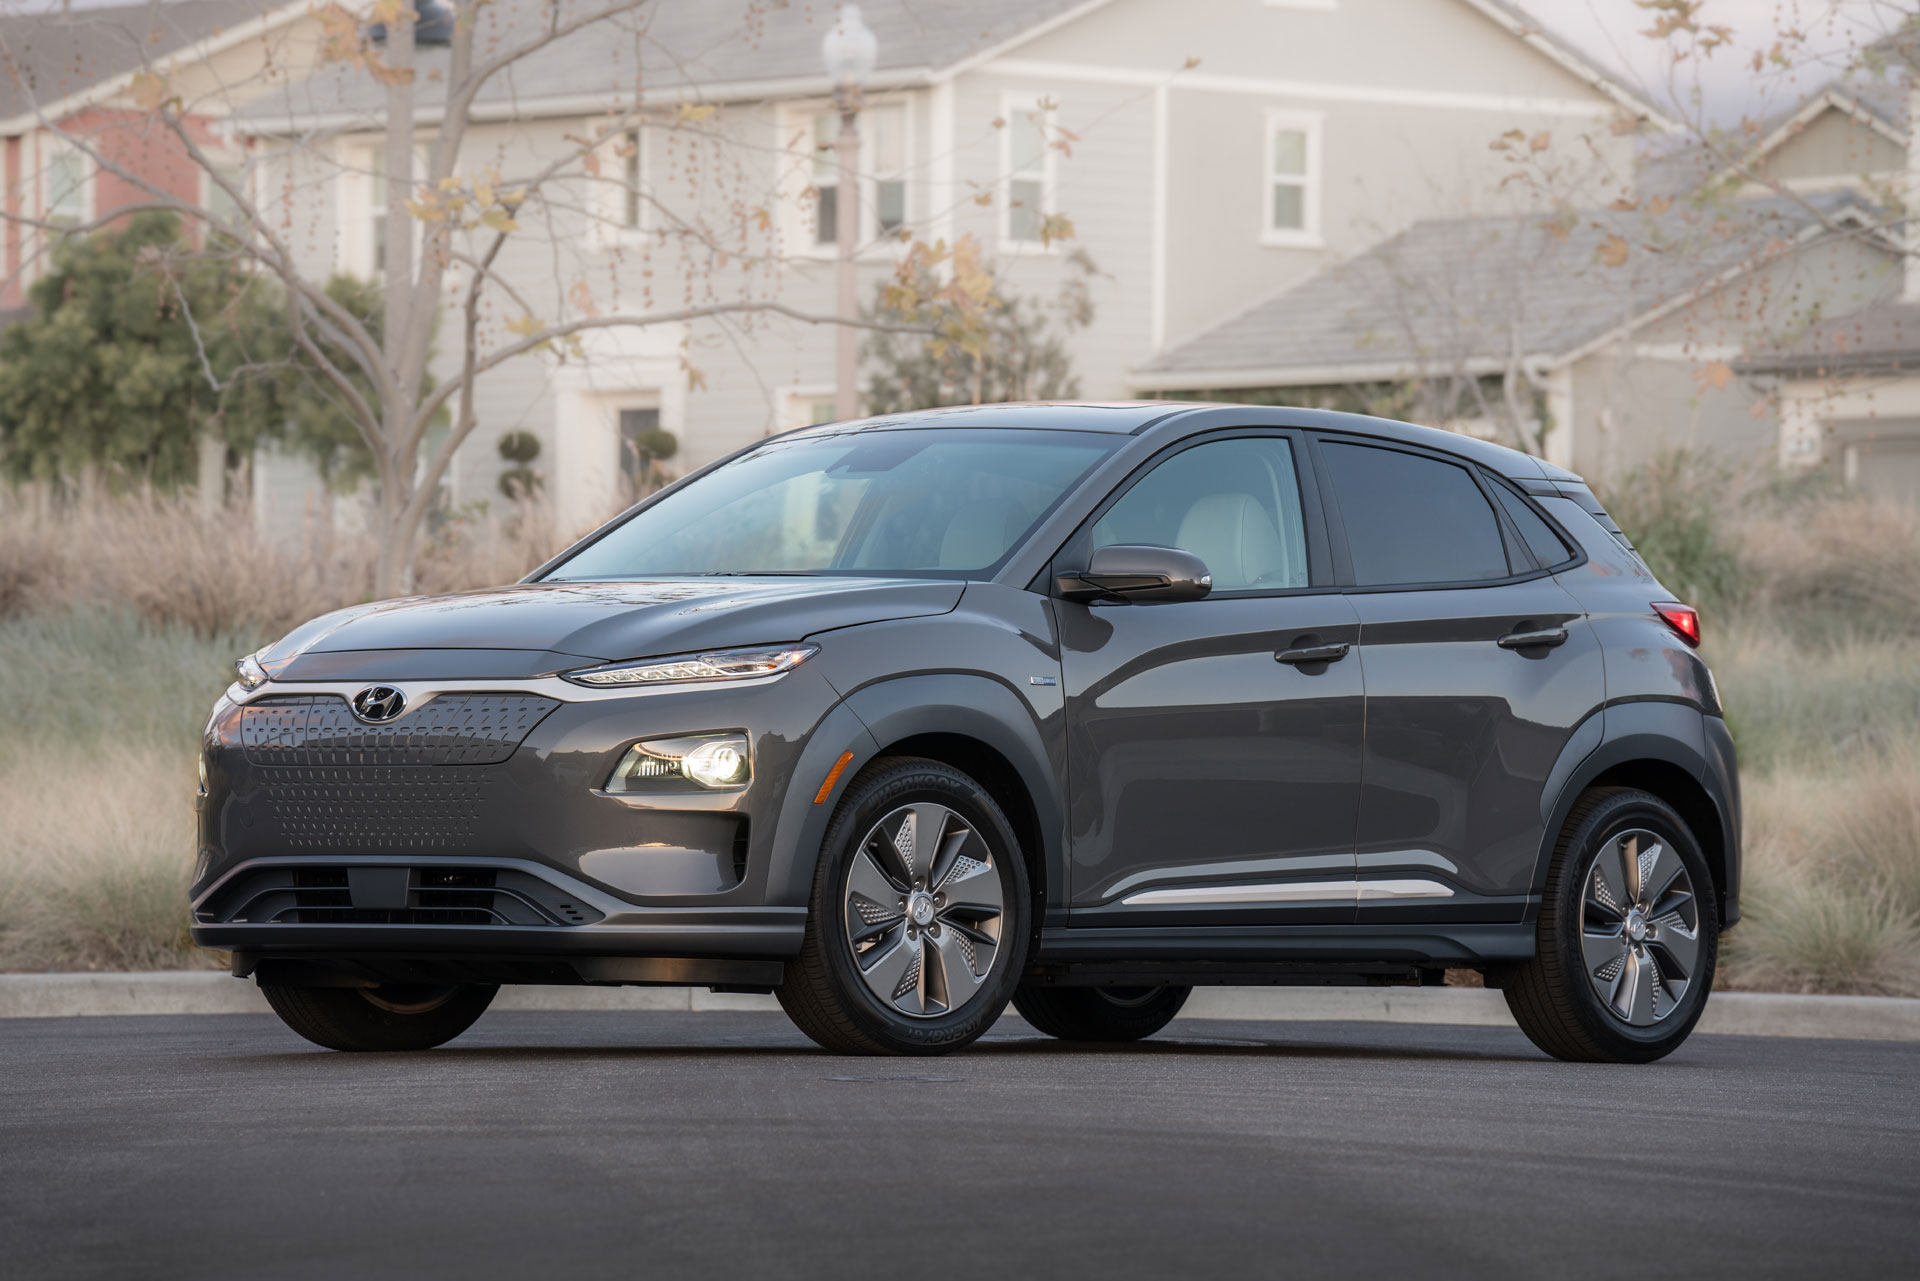 Audi Used For Sale >> 2019 Hyundai Kona Electric Review, Ratings, Specs, Prices, and Photos - The Car Connection